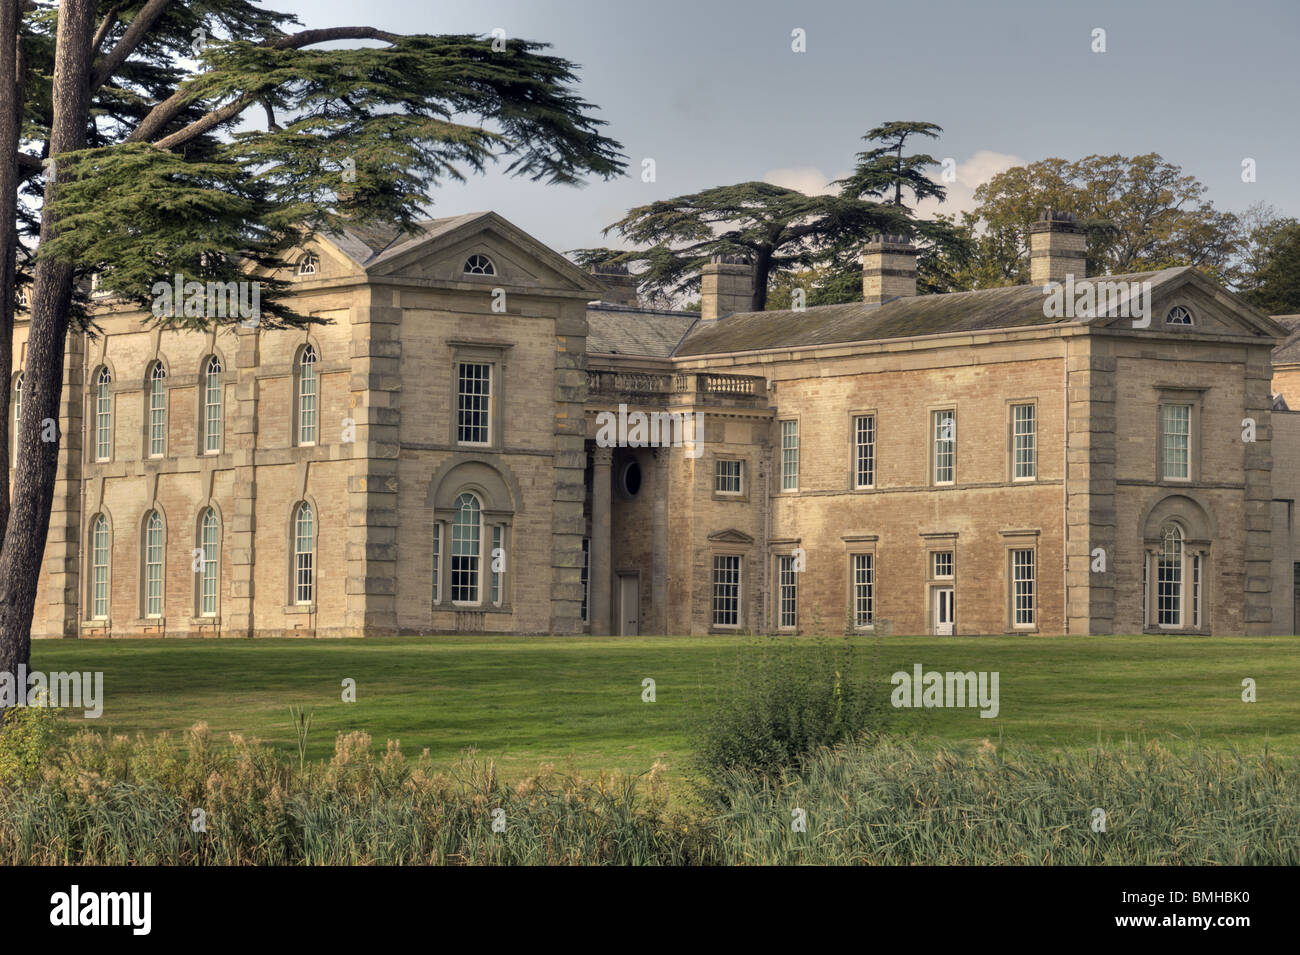 Compton Verney in Warwickshire, Engand - Stock Image